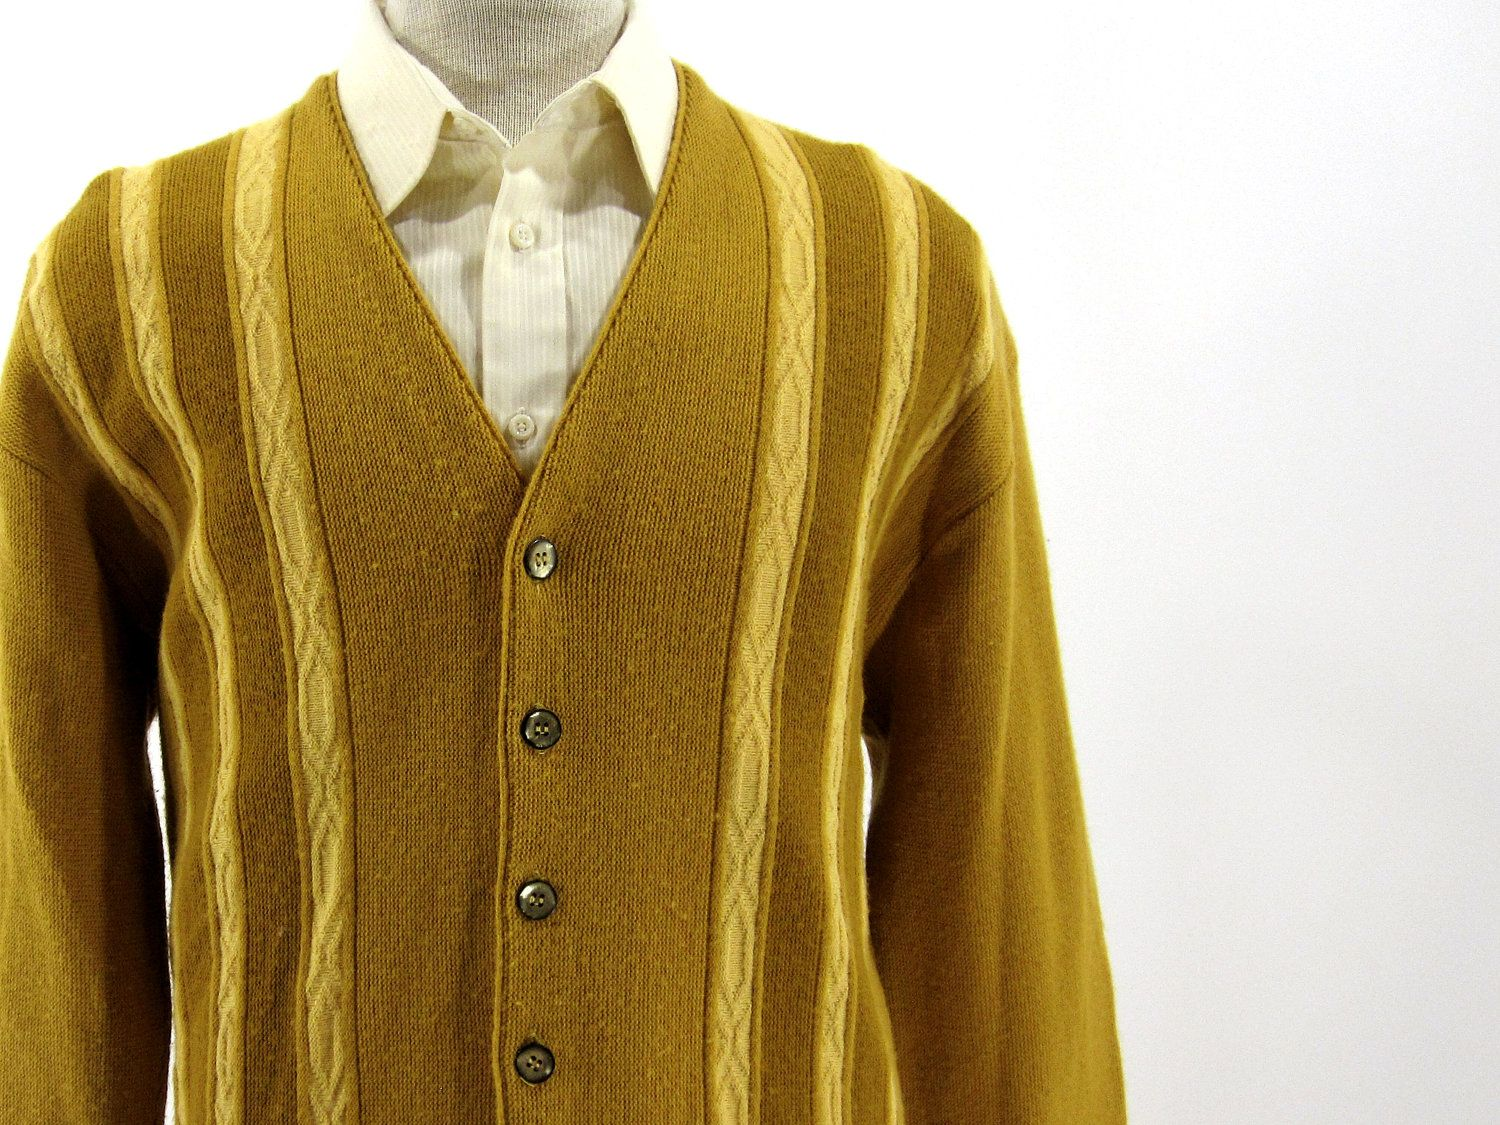 Vintage 1960's Yellow Cardigan Sweater - Mustard Yellow Cream ...